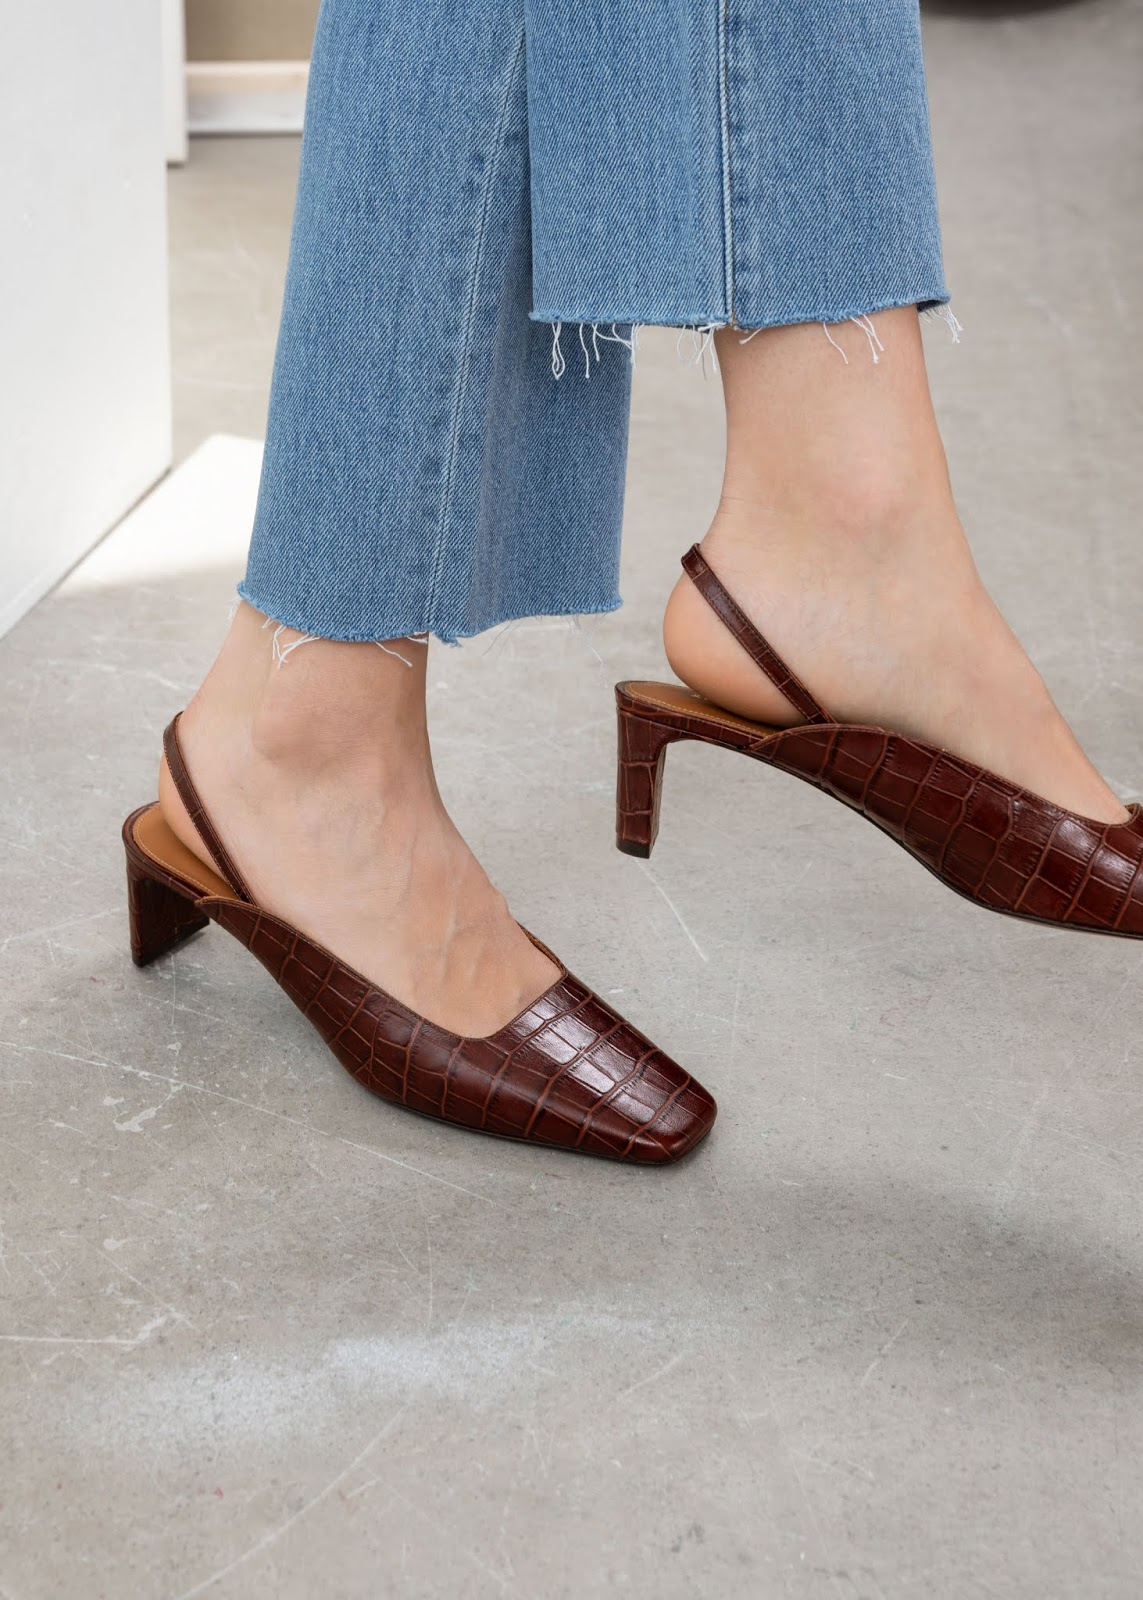 These Square-Toe Croc-Embossed Mule Heels Are a Dream